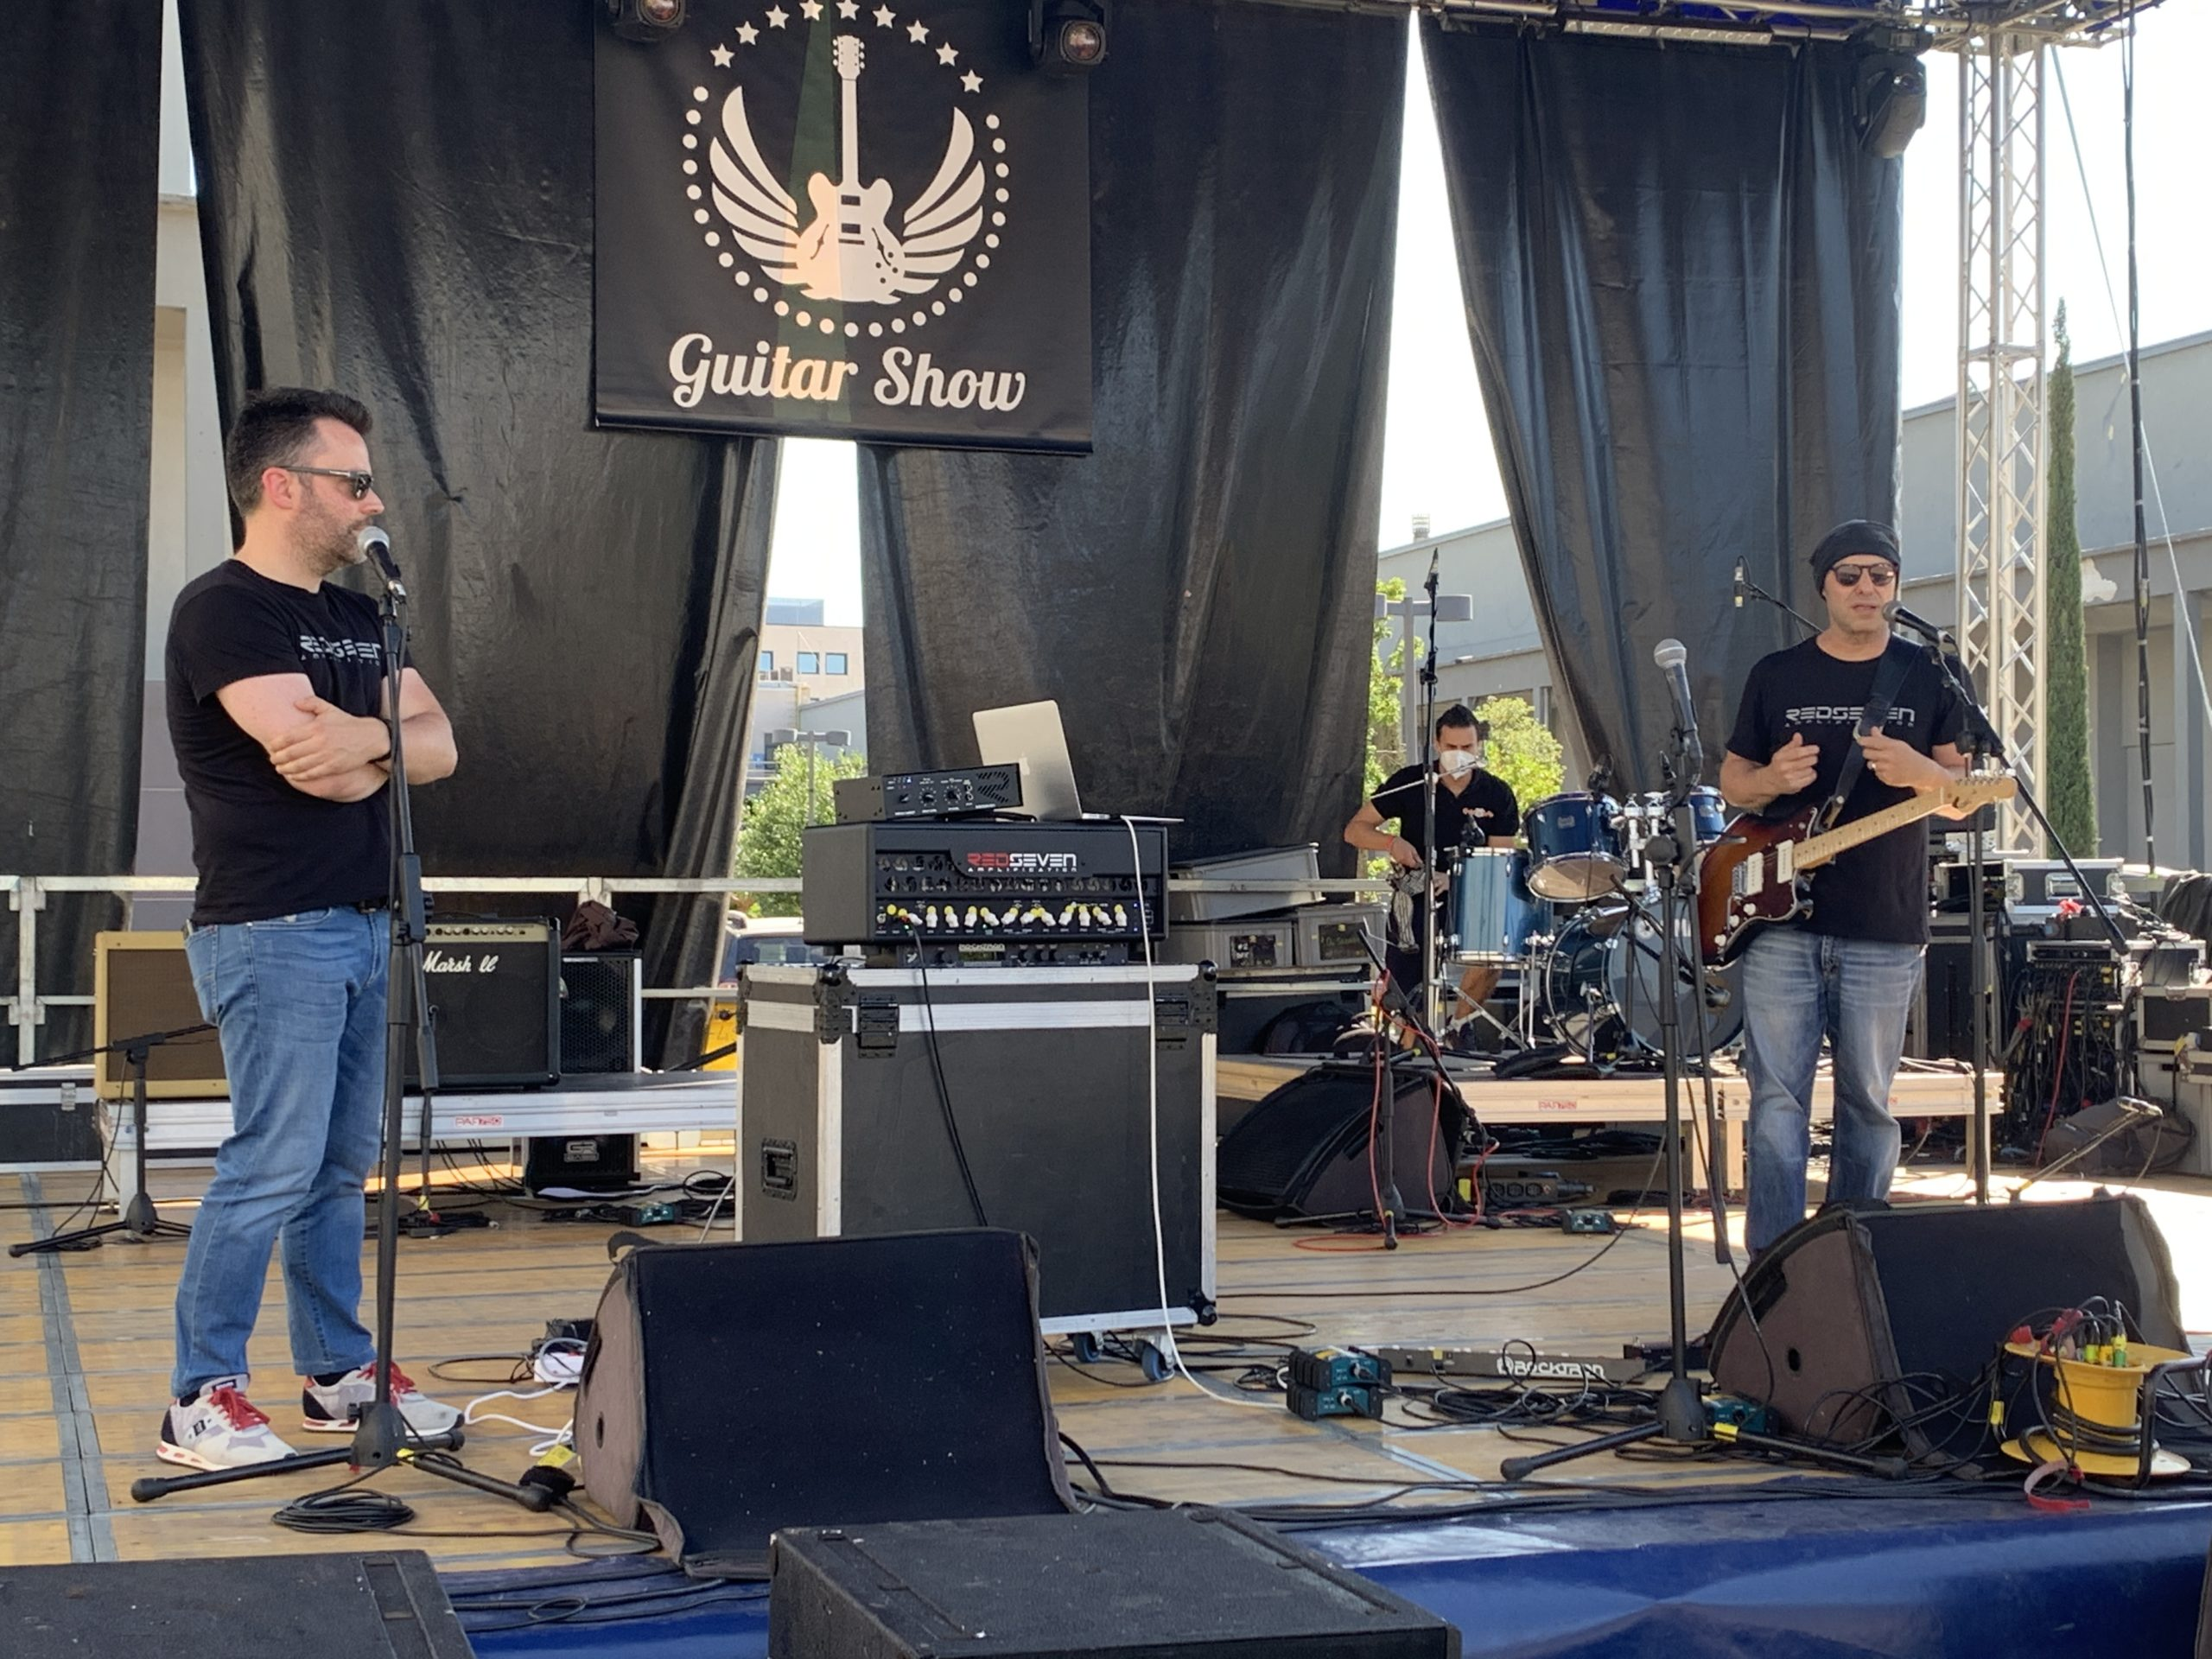 Guitar Show Italy in Padova, day 1 on a gorgeous sunny Saturday